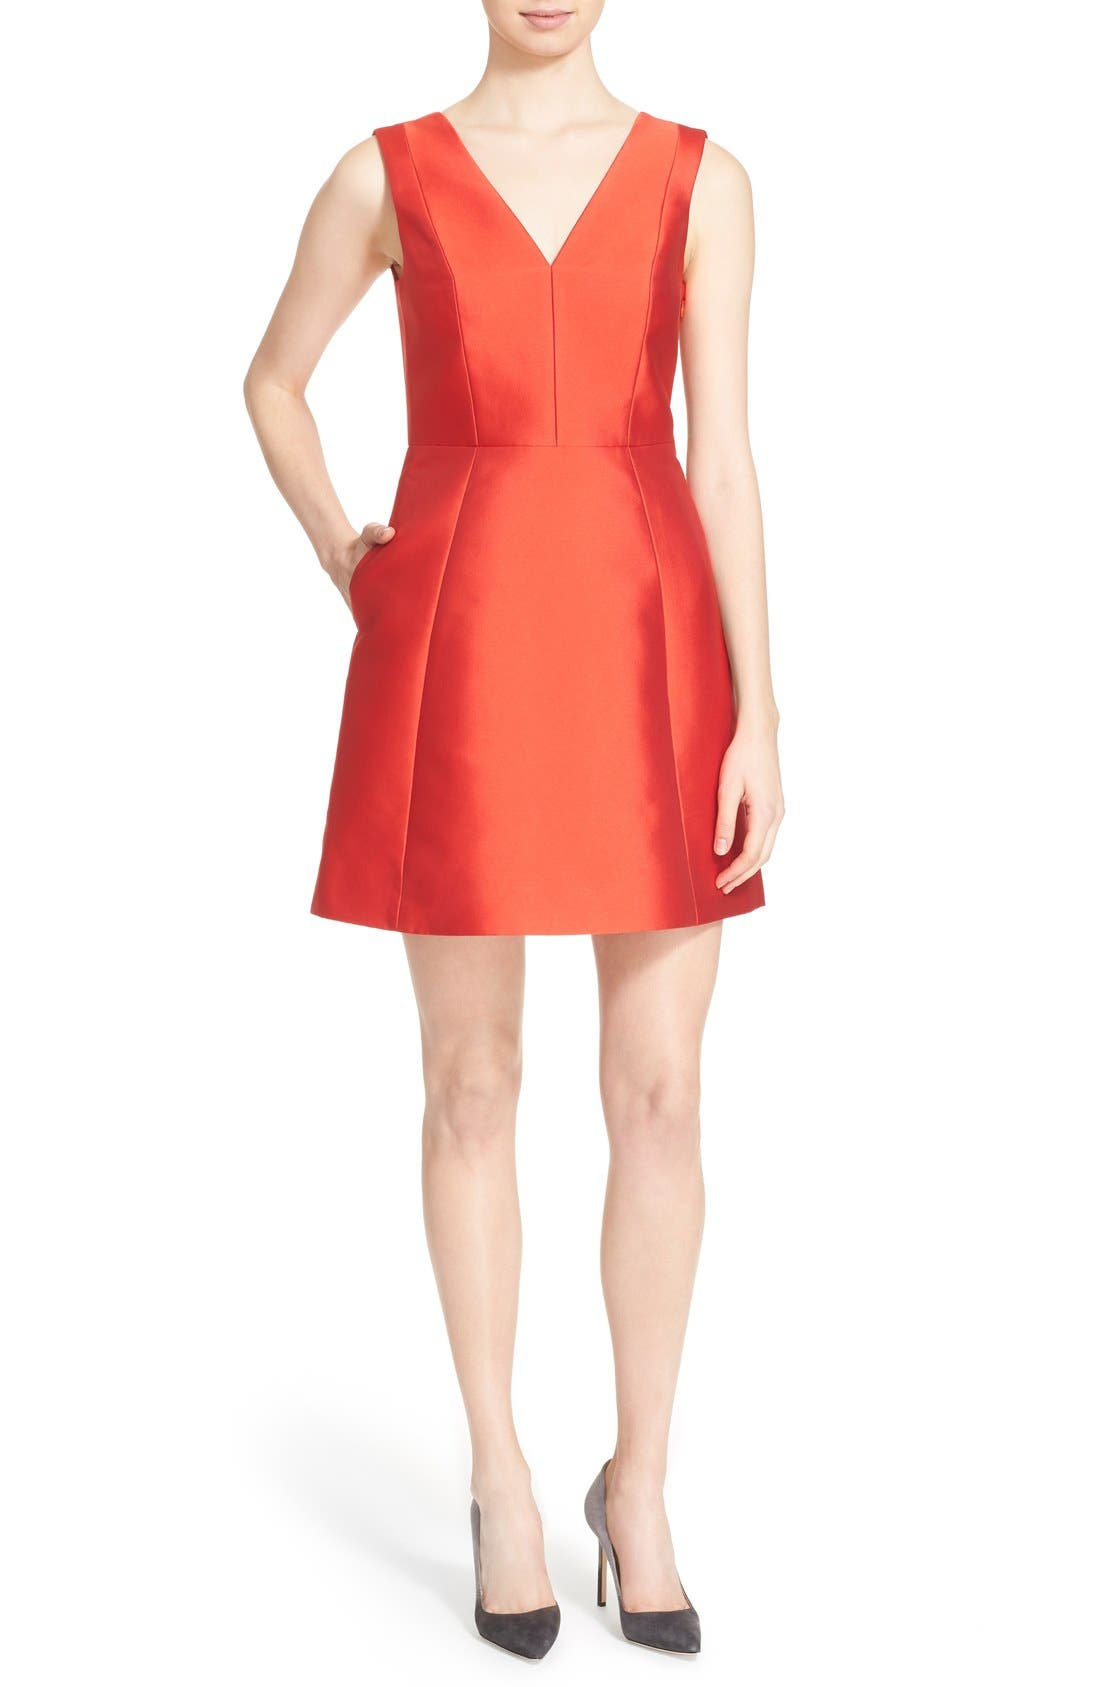 open back bow dress, Main, color, 601